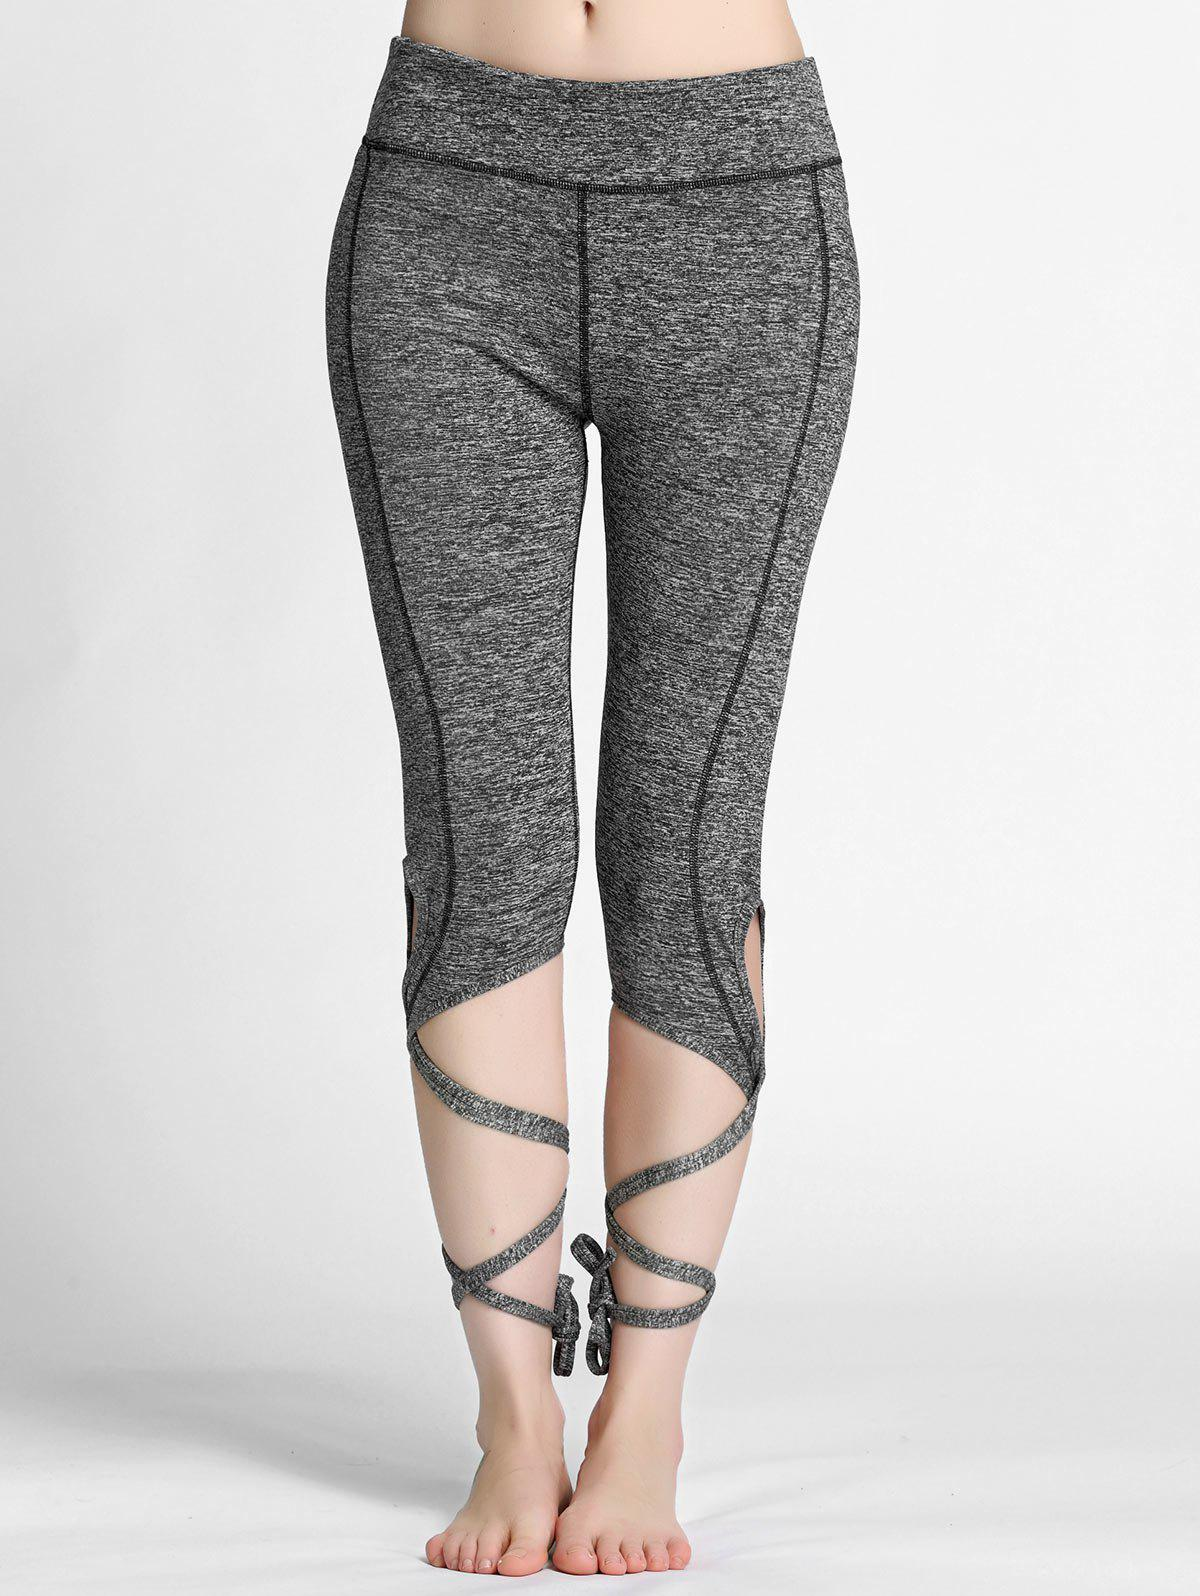 aac9b23dcbbe2 21% OFF] High Waisted Lace Up Gym Leggings | Rosegal